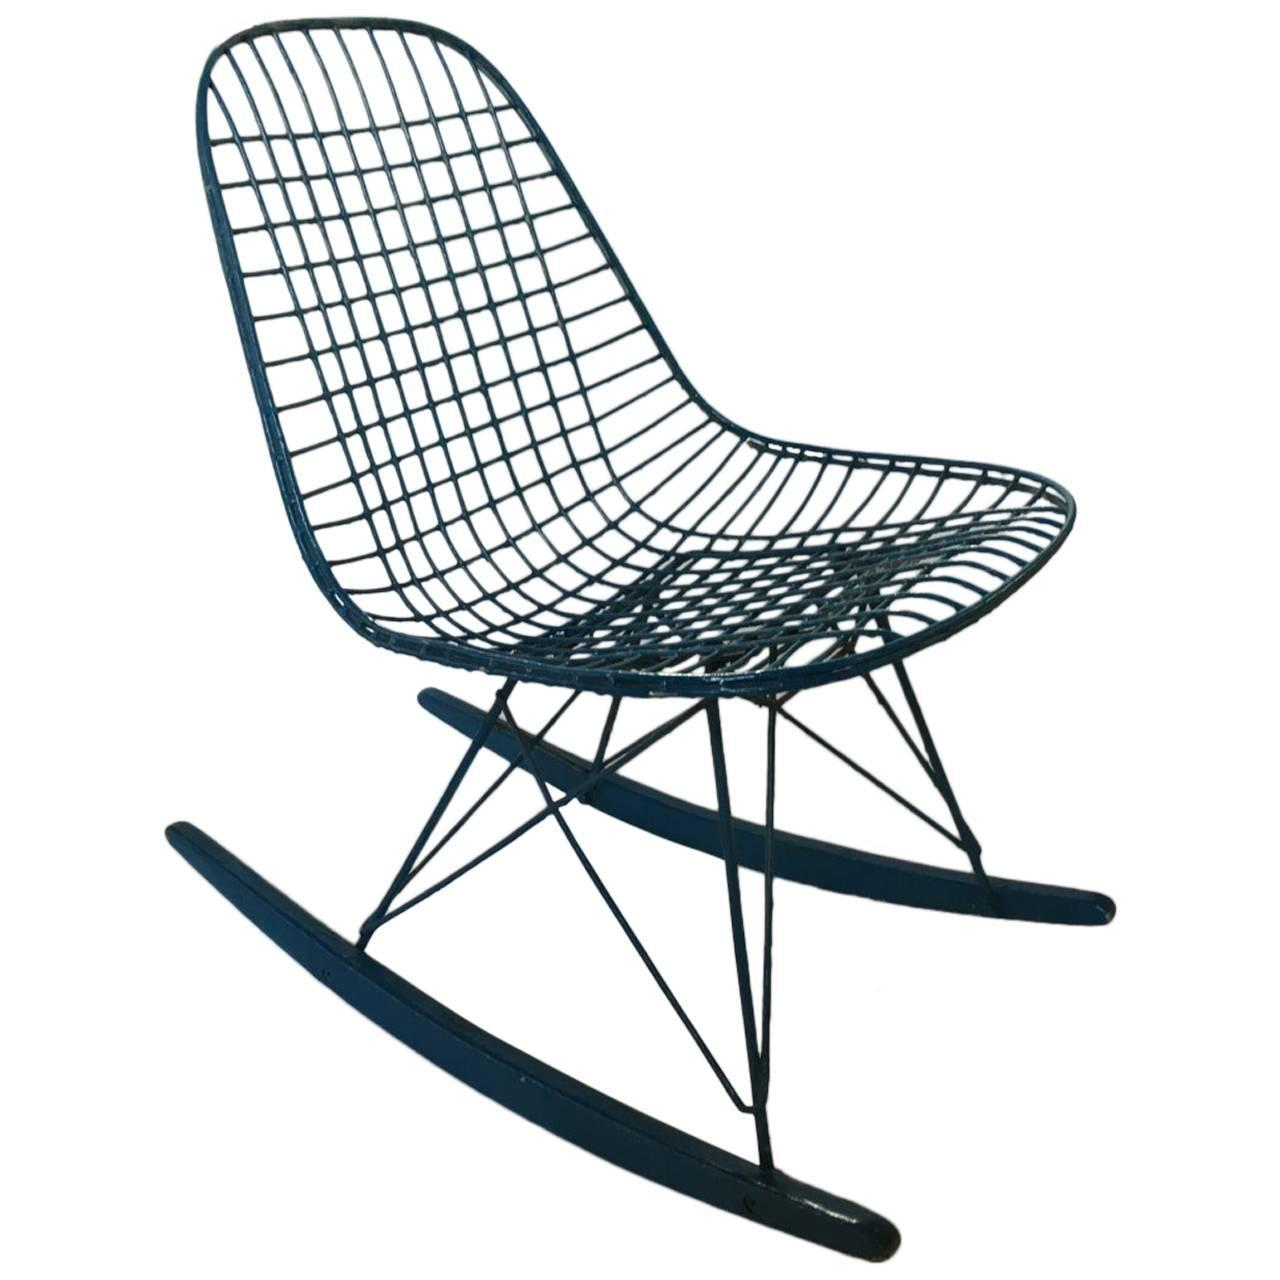 eames rocking chair outdoor chairs world market charles 1950 for sale at 1stdibs